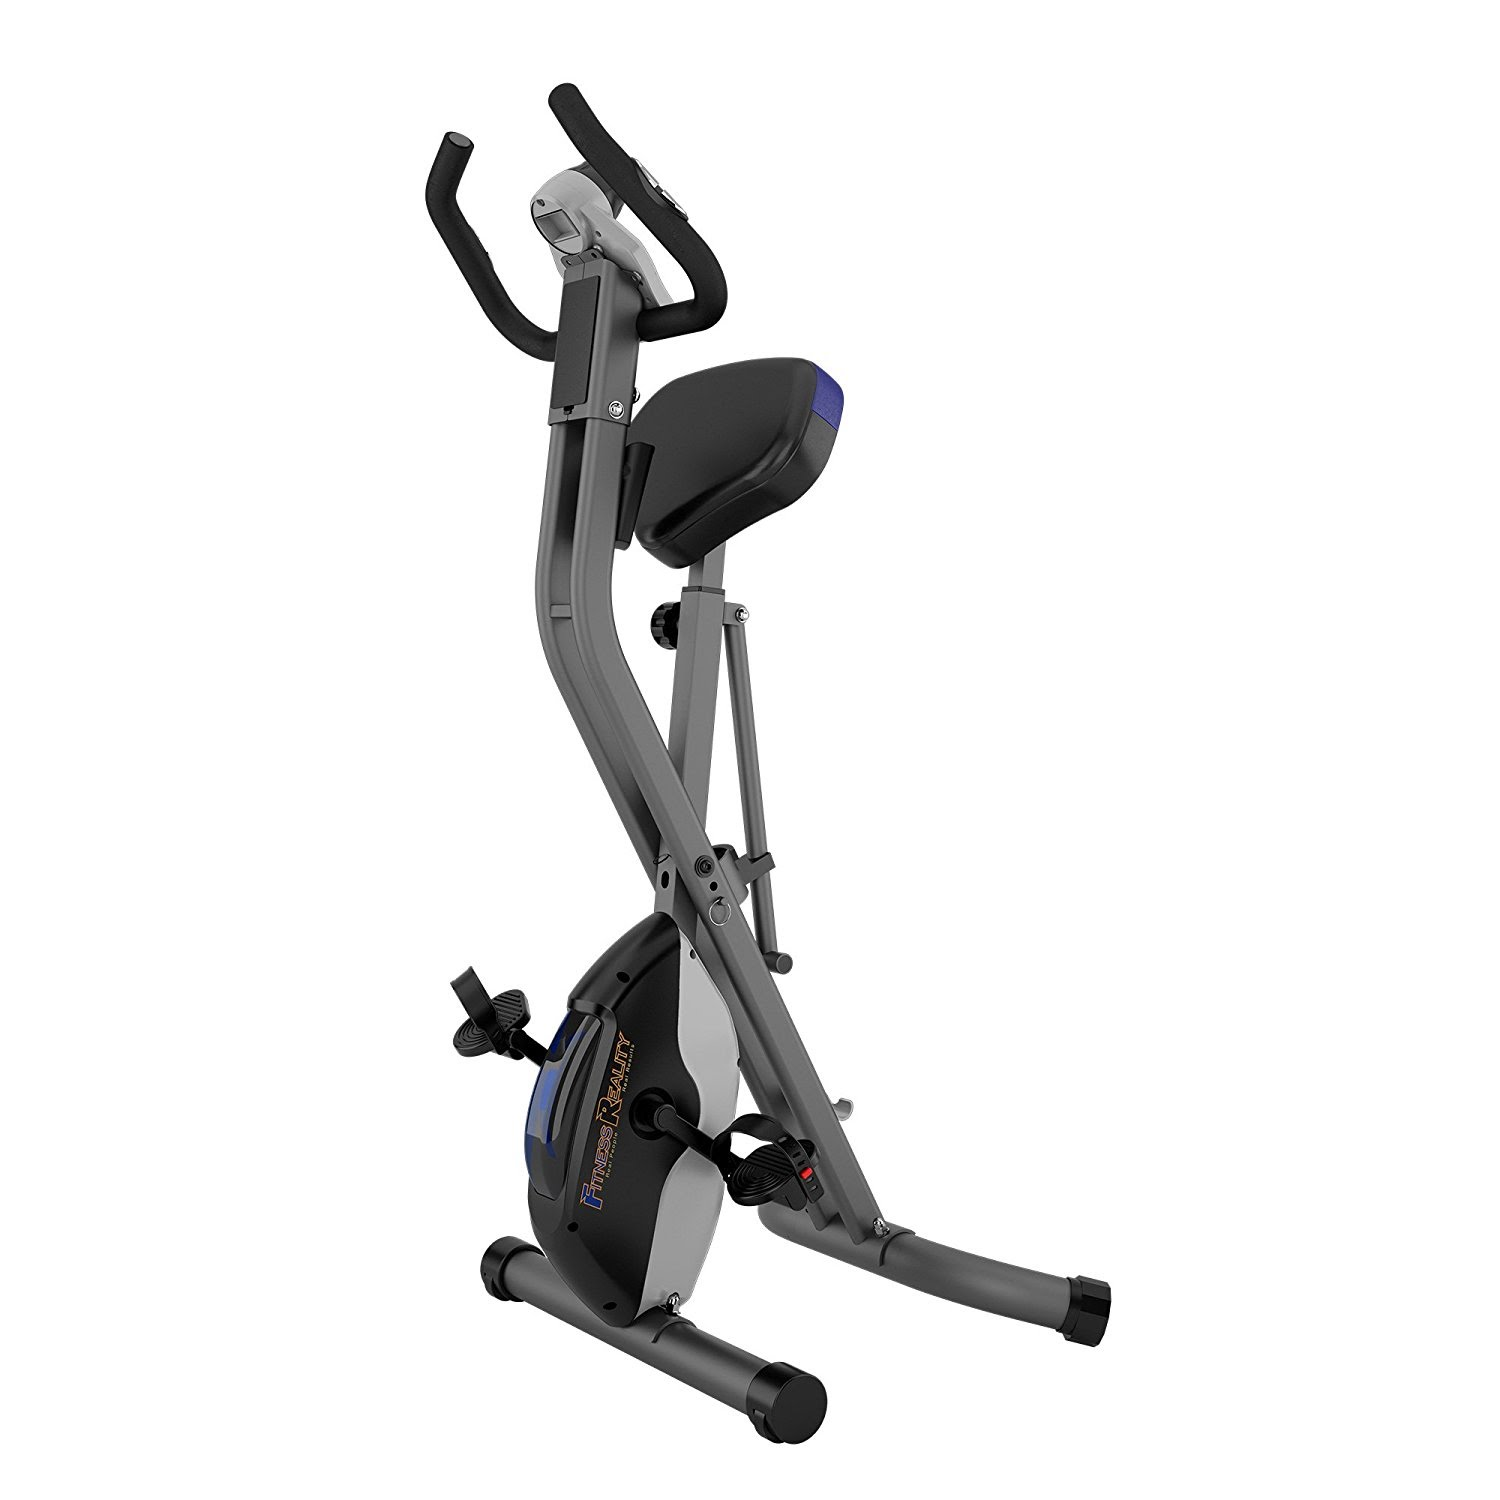 Exercise Bike Tall Person: Exercise Bike Zone: Fitness Reality U2500 Super Max